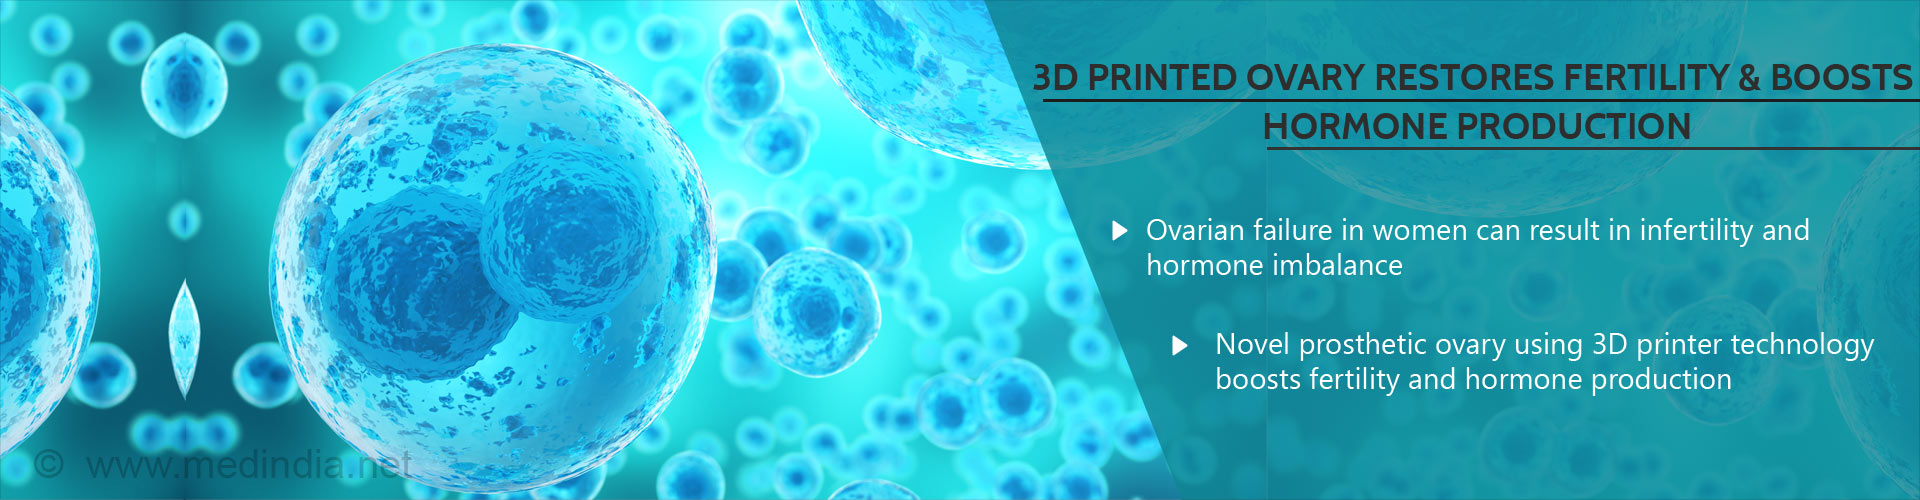 Breakthrough 3D Printed Ovary Restores Fertility, Boosts Hormone Production